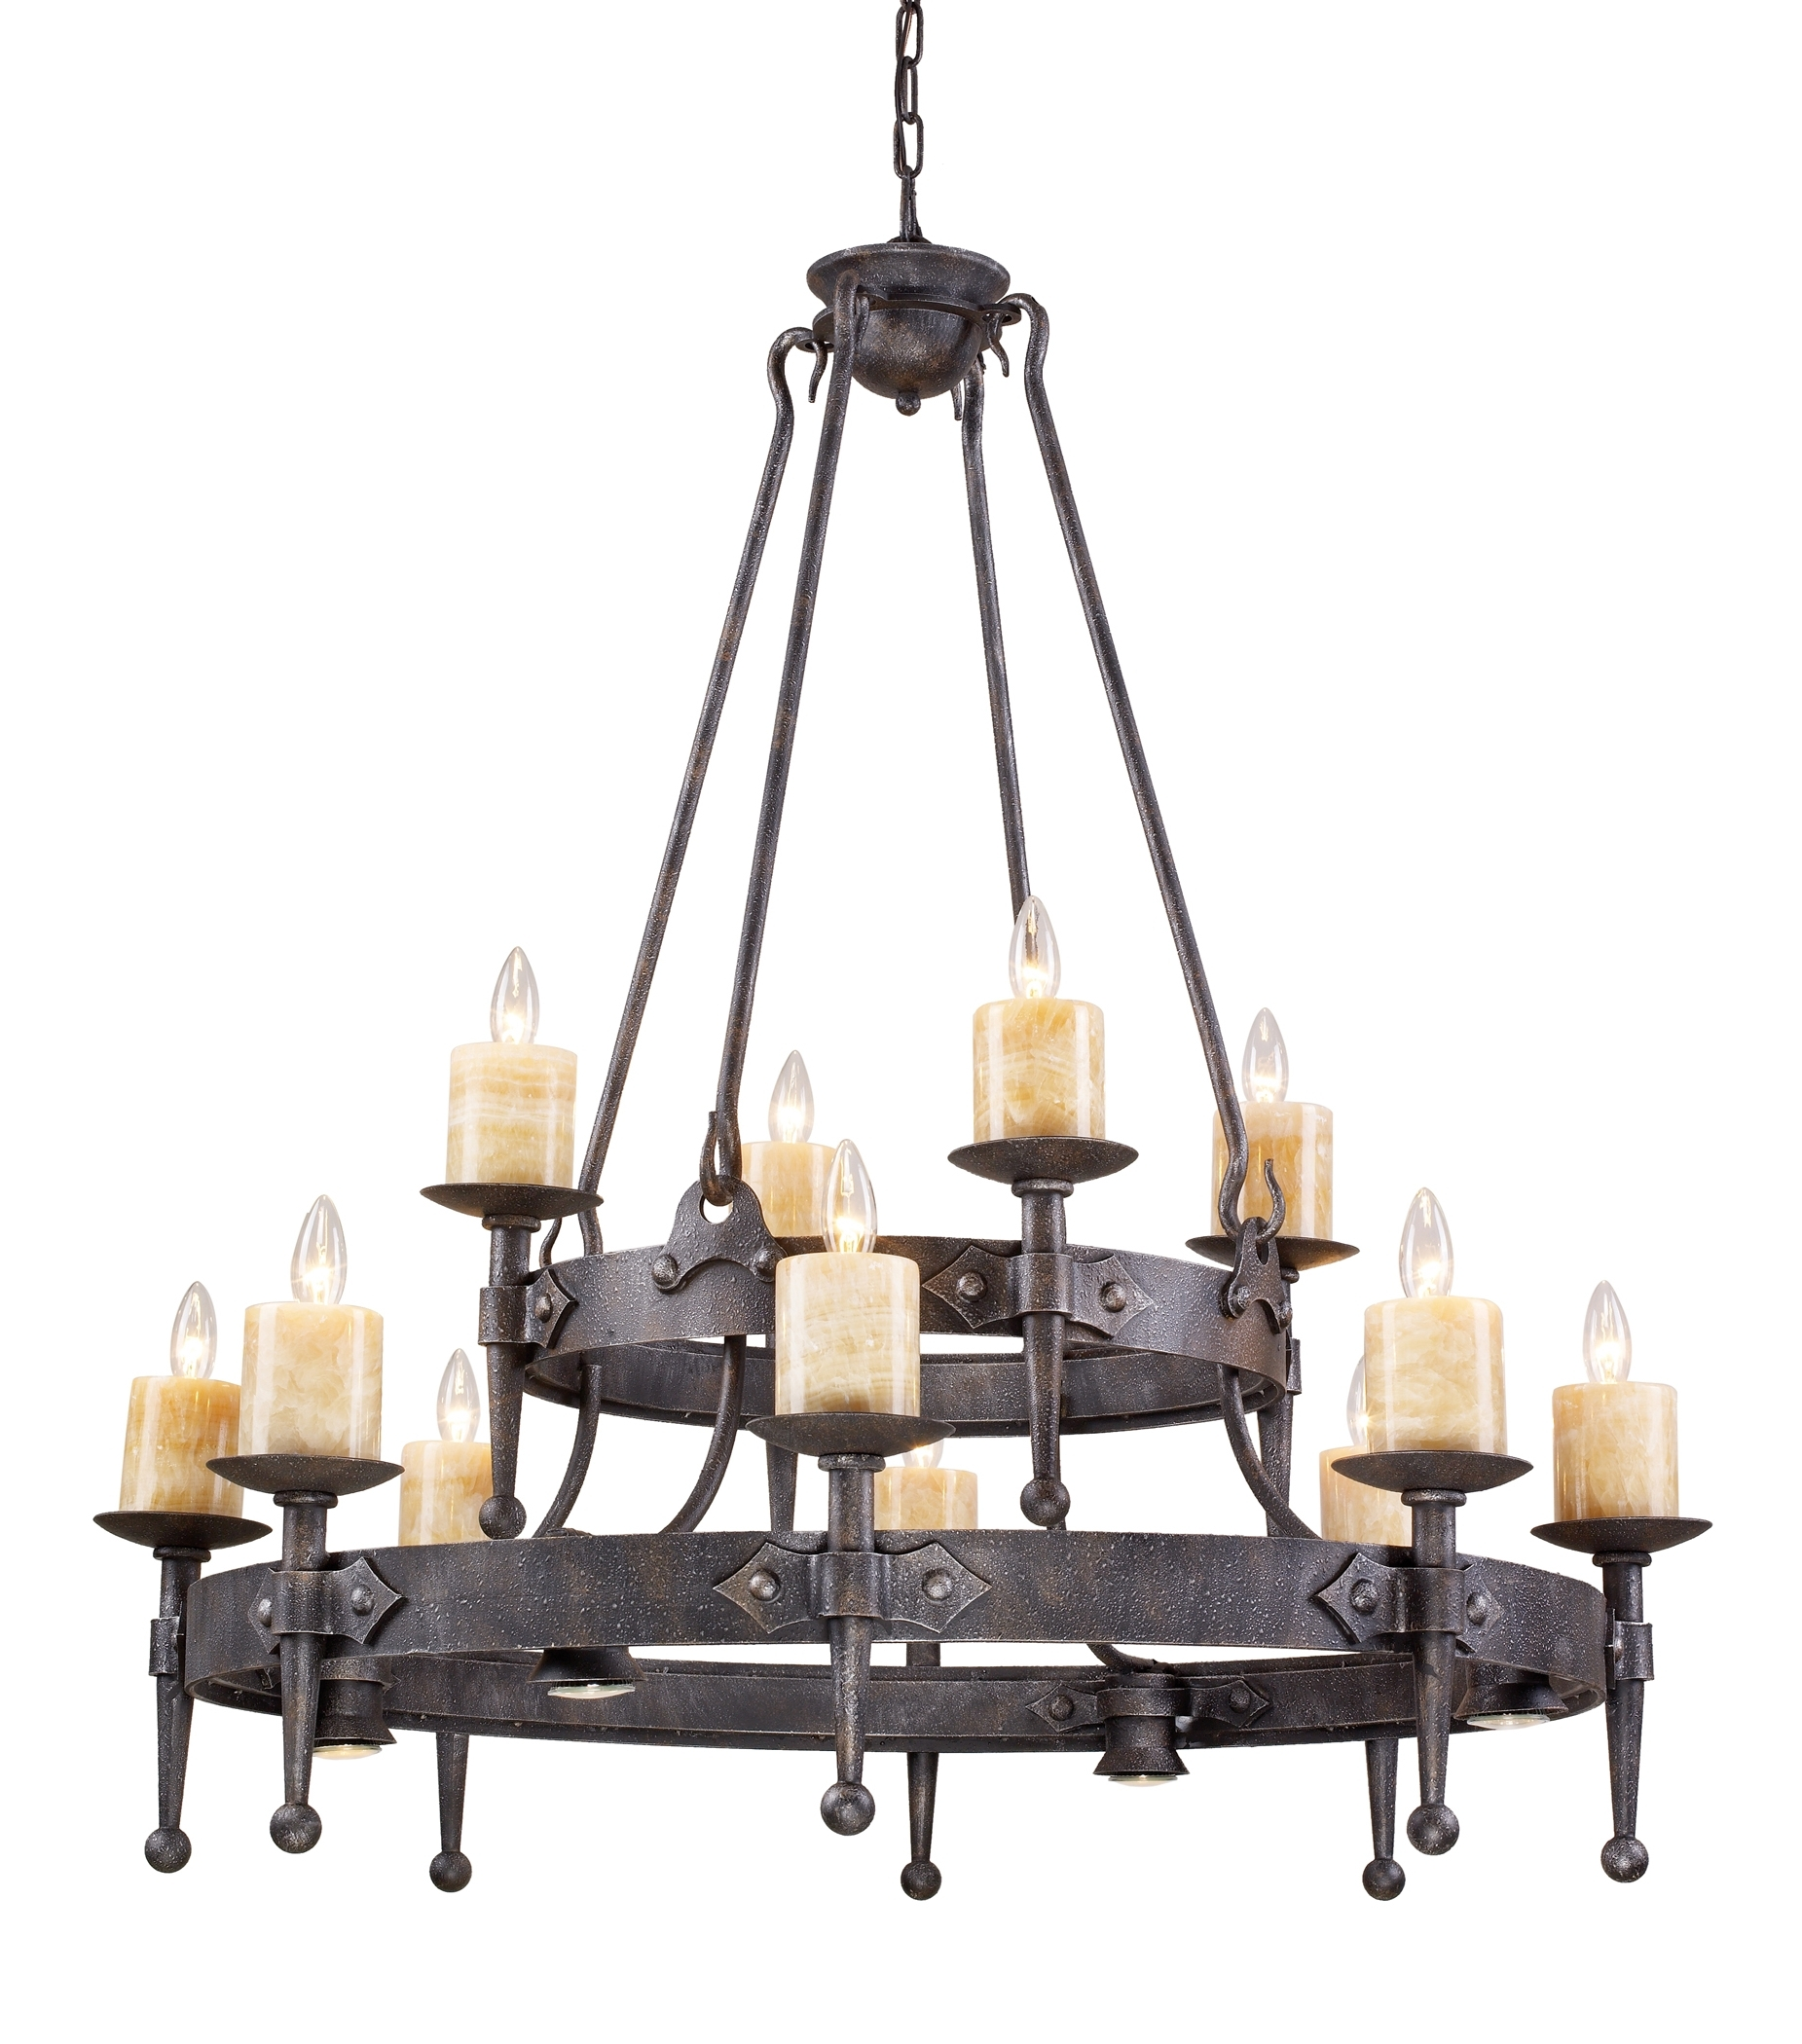 Spectacular Wonderful Round Iron Chandelier Extra Large Round Iron Intended For Popular Large Iron Chandeliers (View 14 of 15)